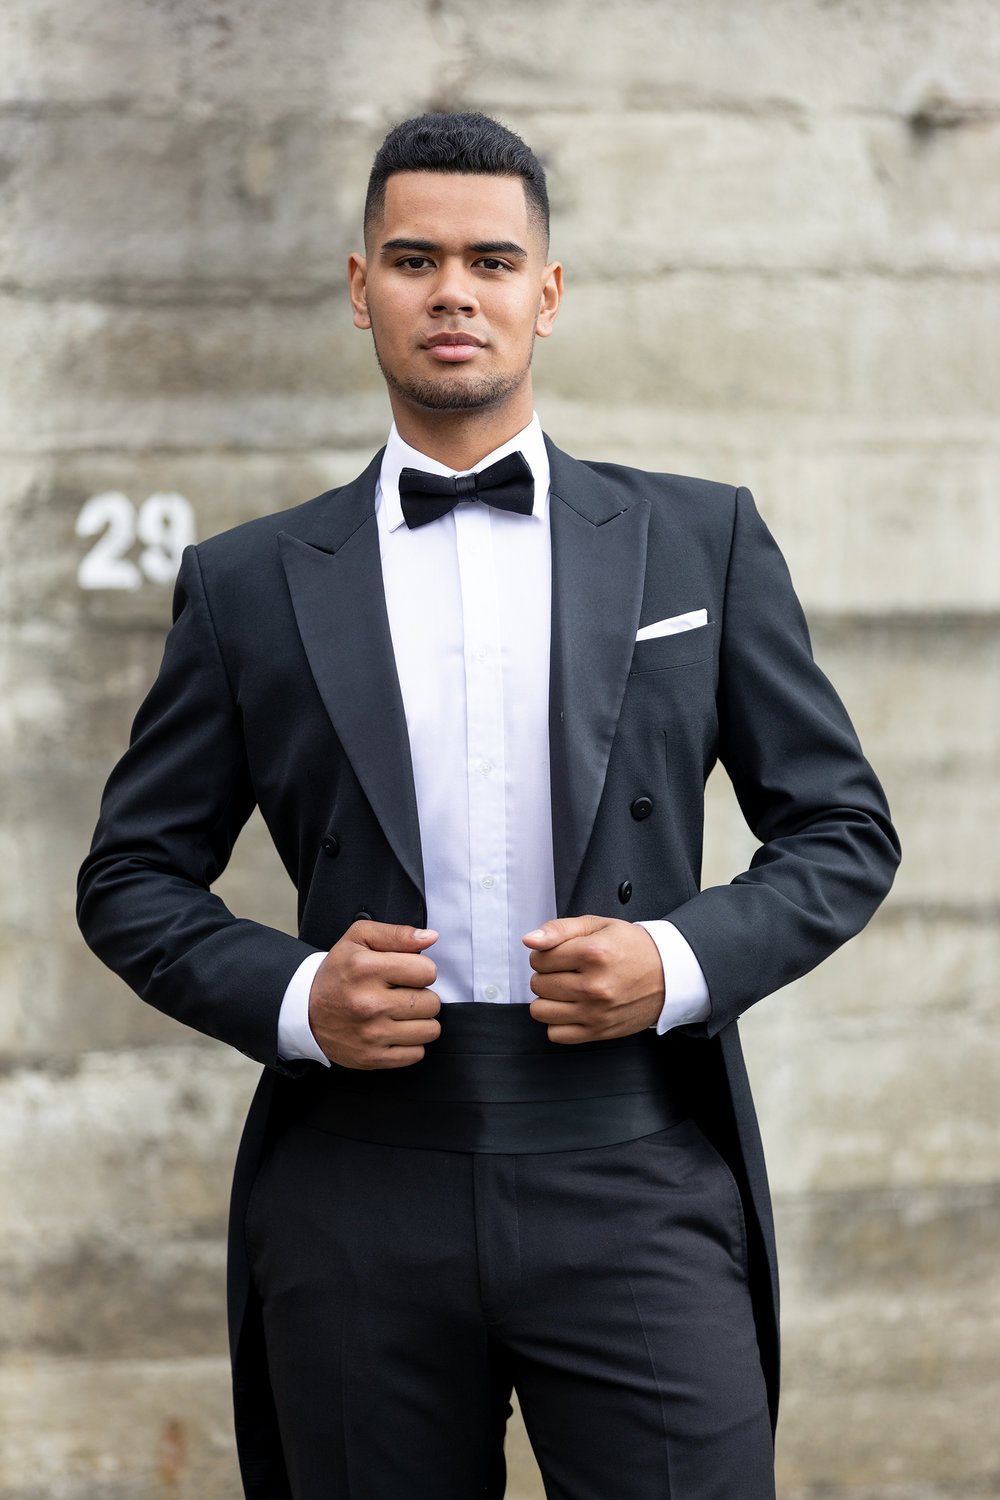 EVENING TaILS - - Black- Peak lapel with satin finish- Open tailed suit jacket- Straight leg trouserHire price $120 NZDReg: 88—124Short: 92—120Tall: 92—120